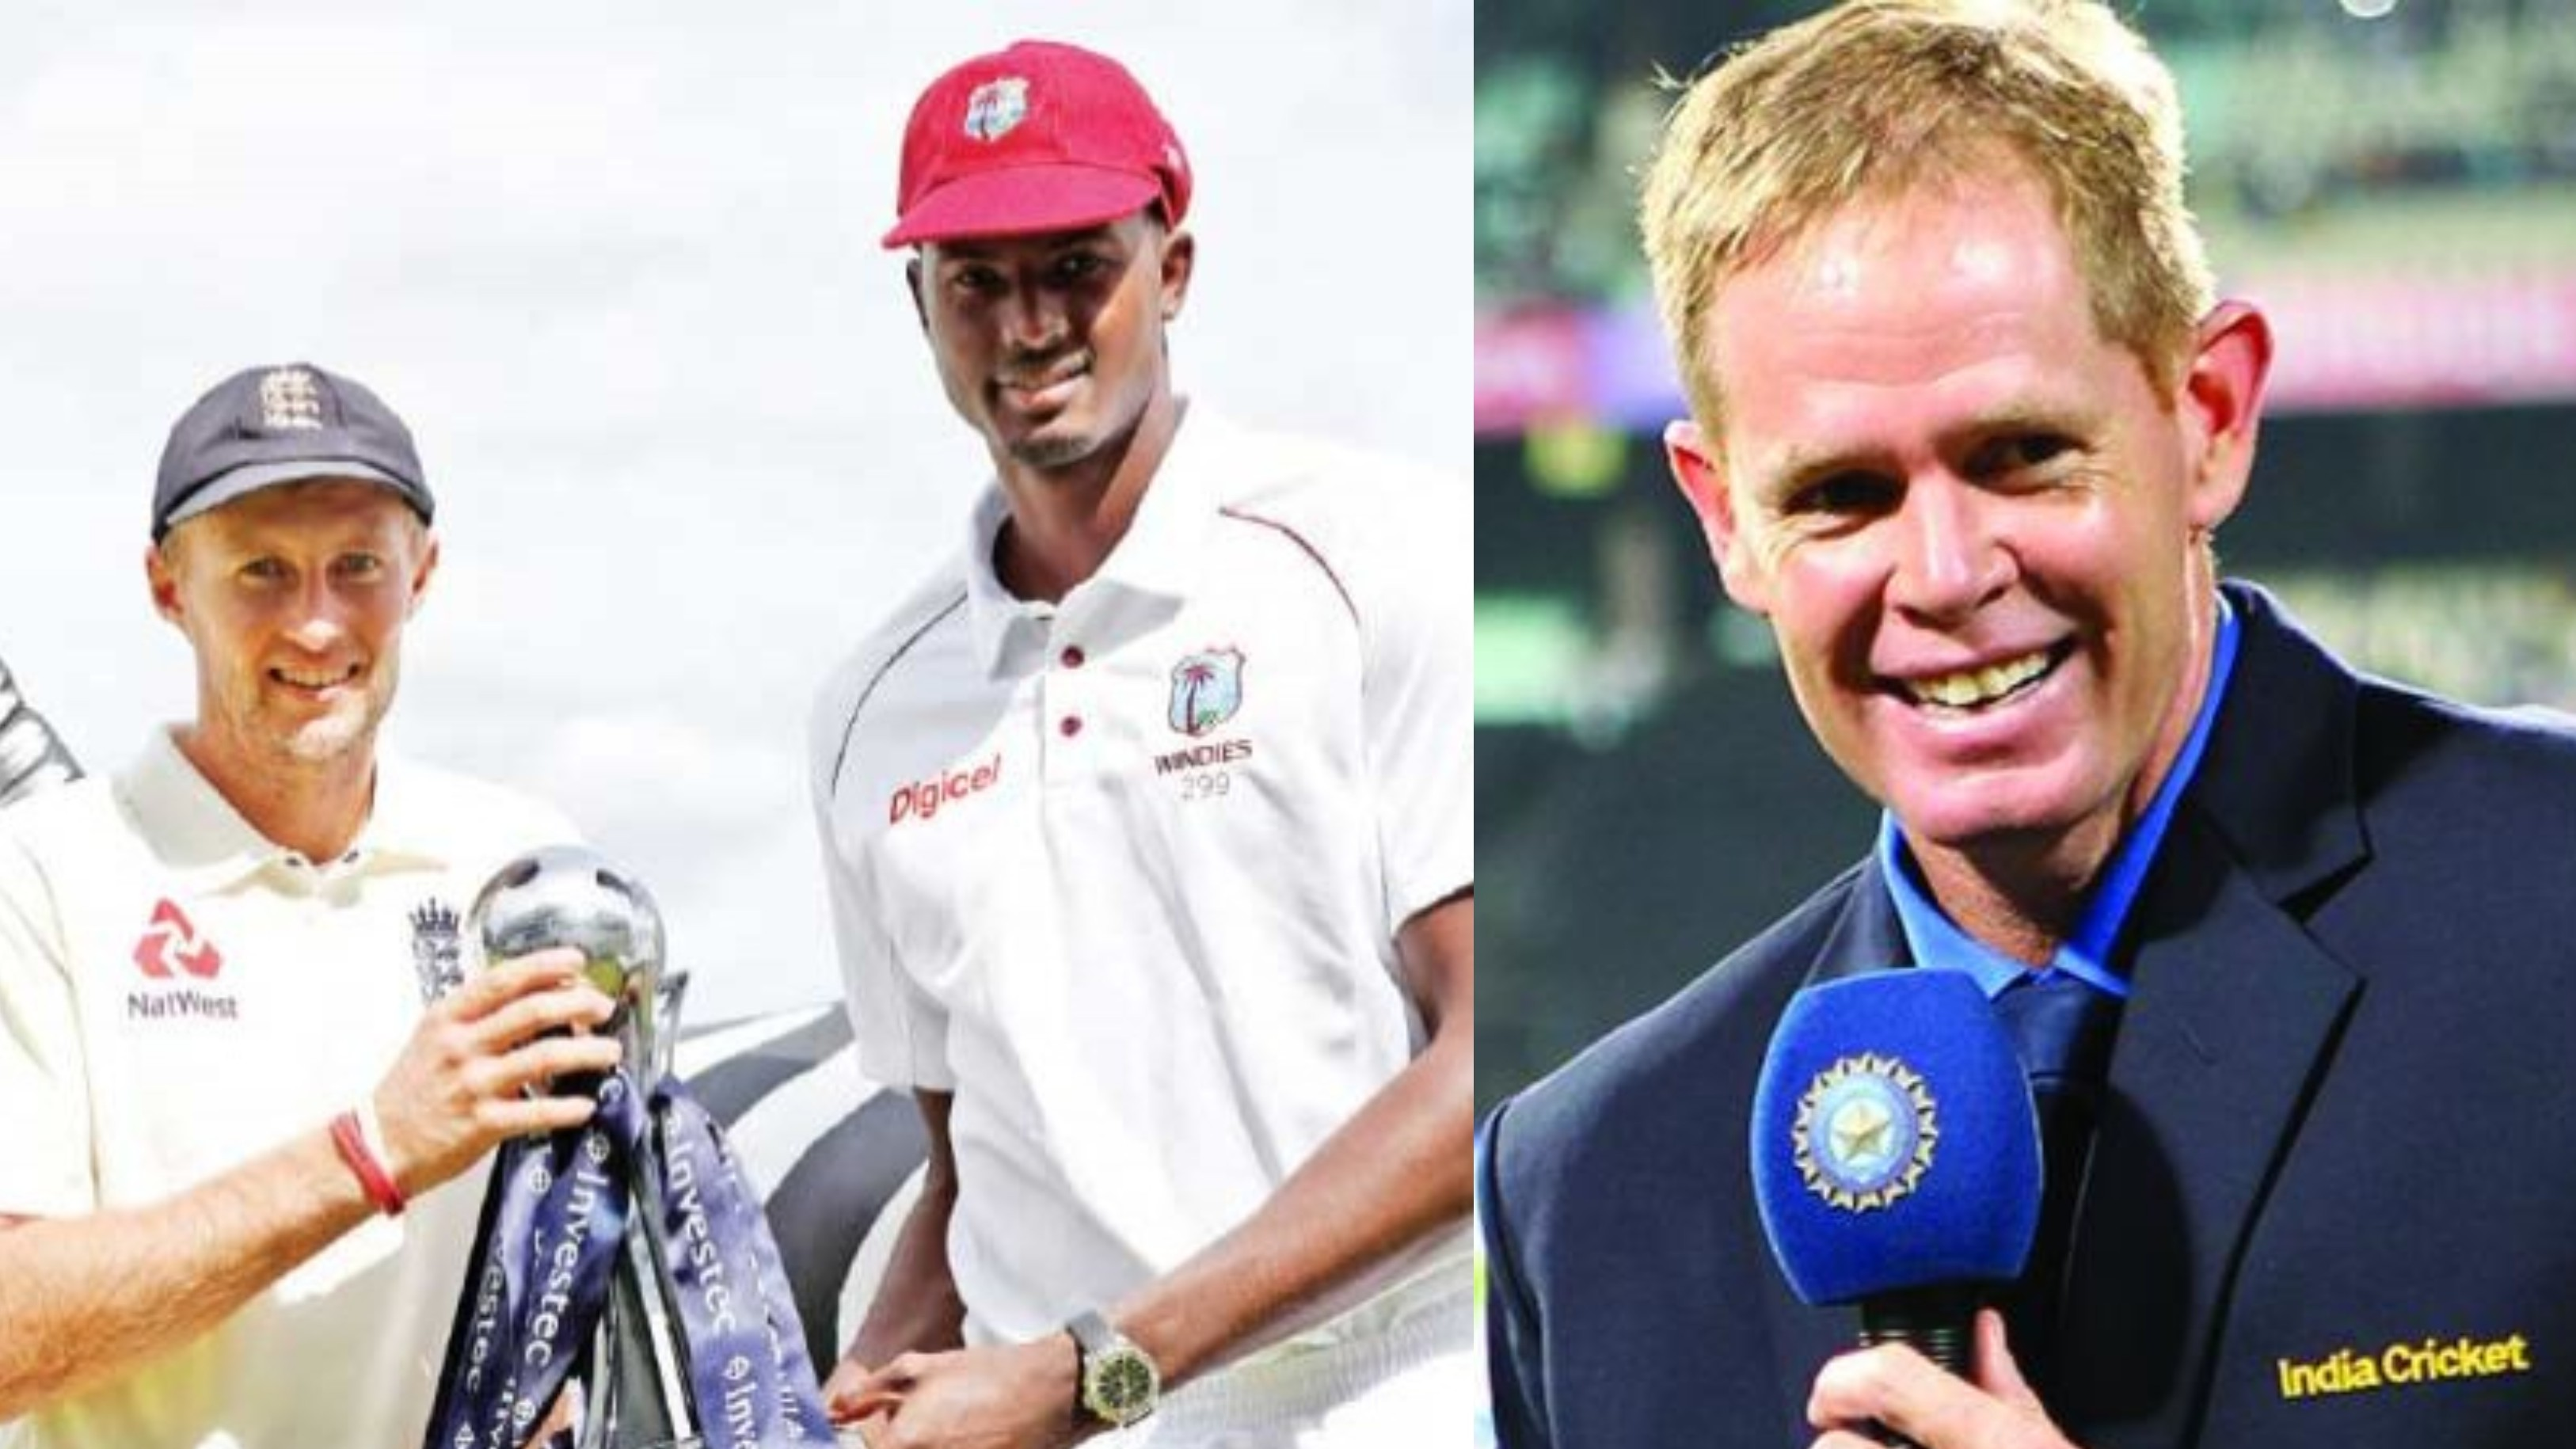 ENG v WI 2020: England-West Indies series will be litmus test to see how things can unfold, says Shaun Pollock